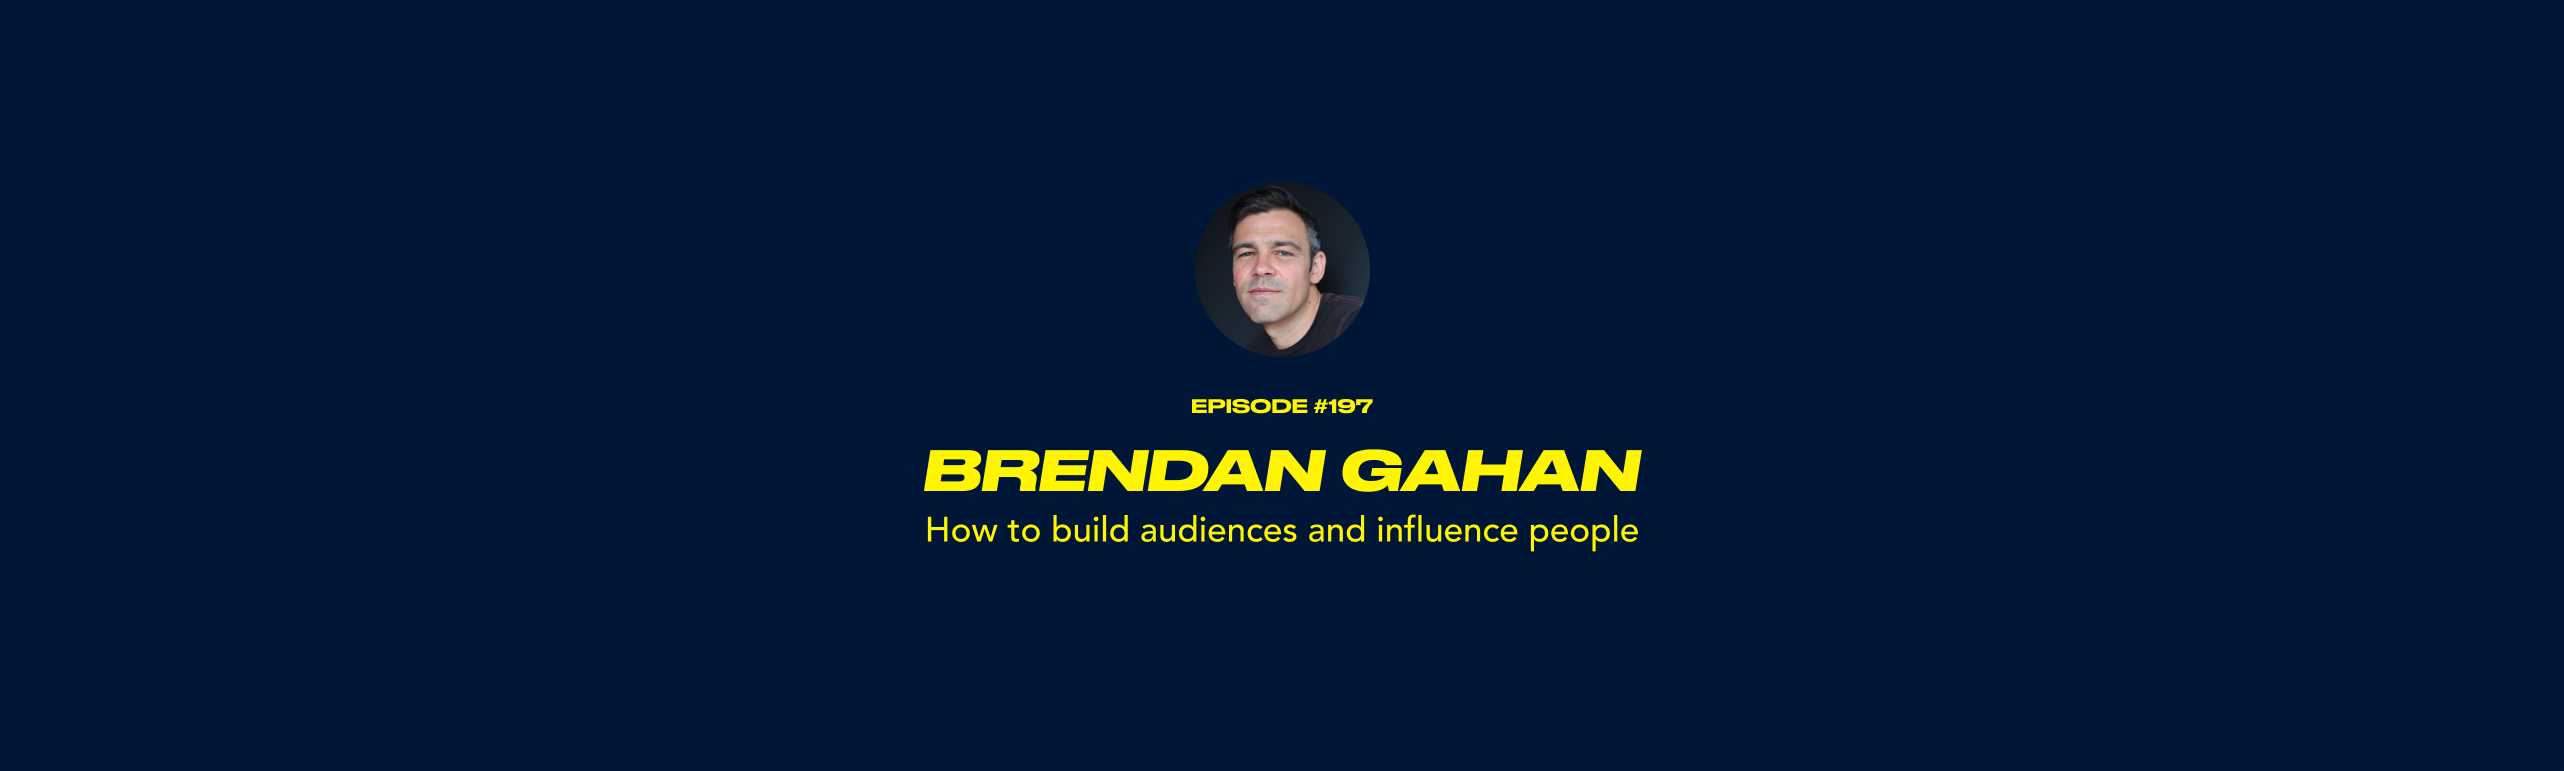 Brendan Gahan - How to build audiences and influence people